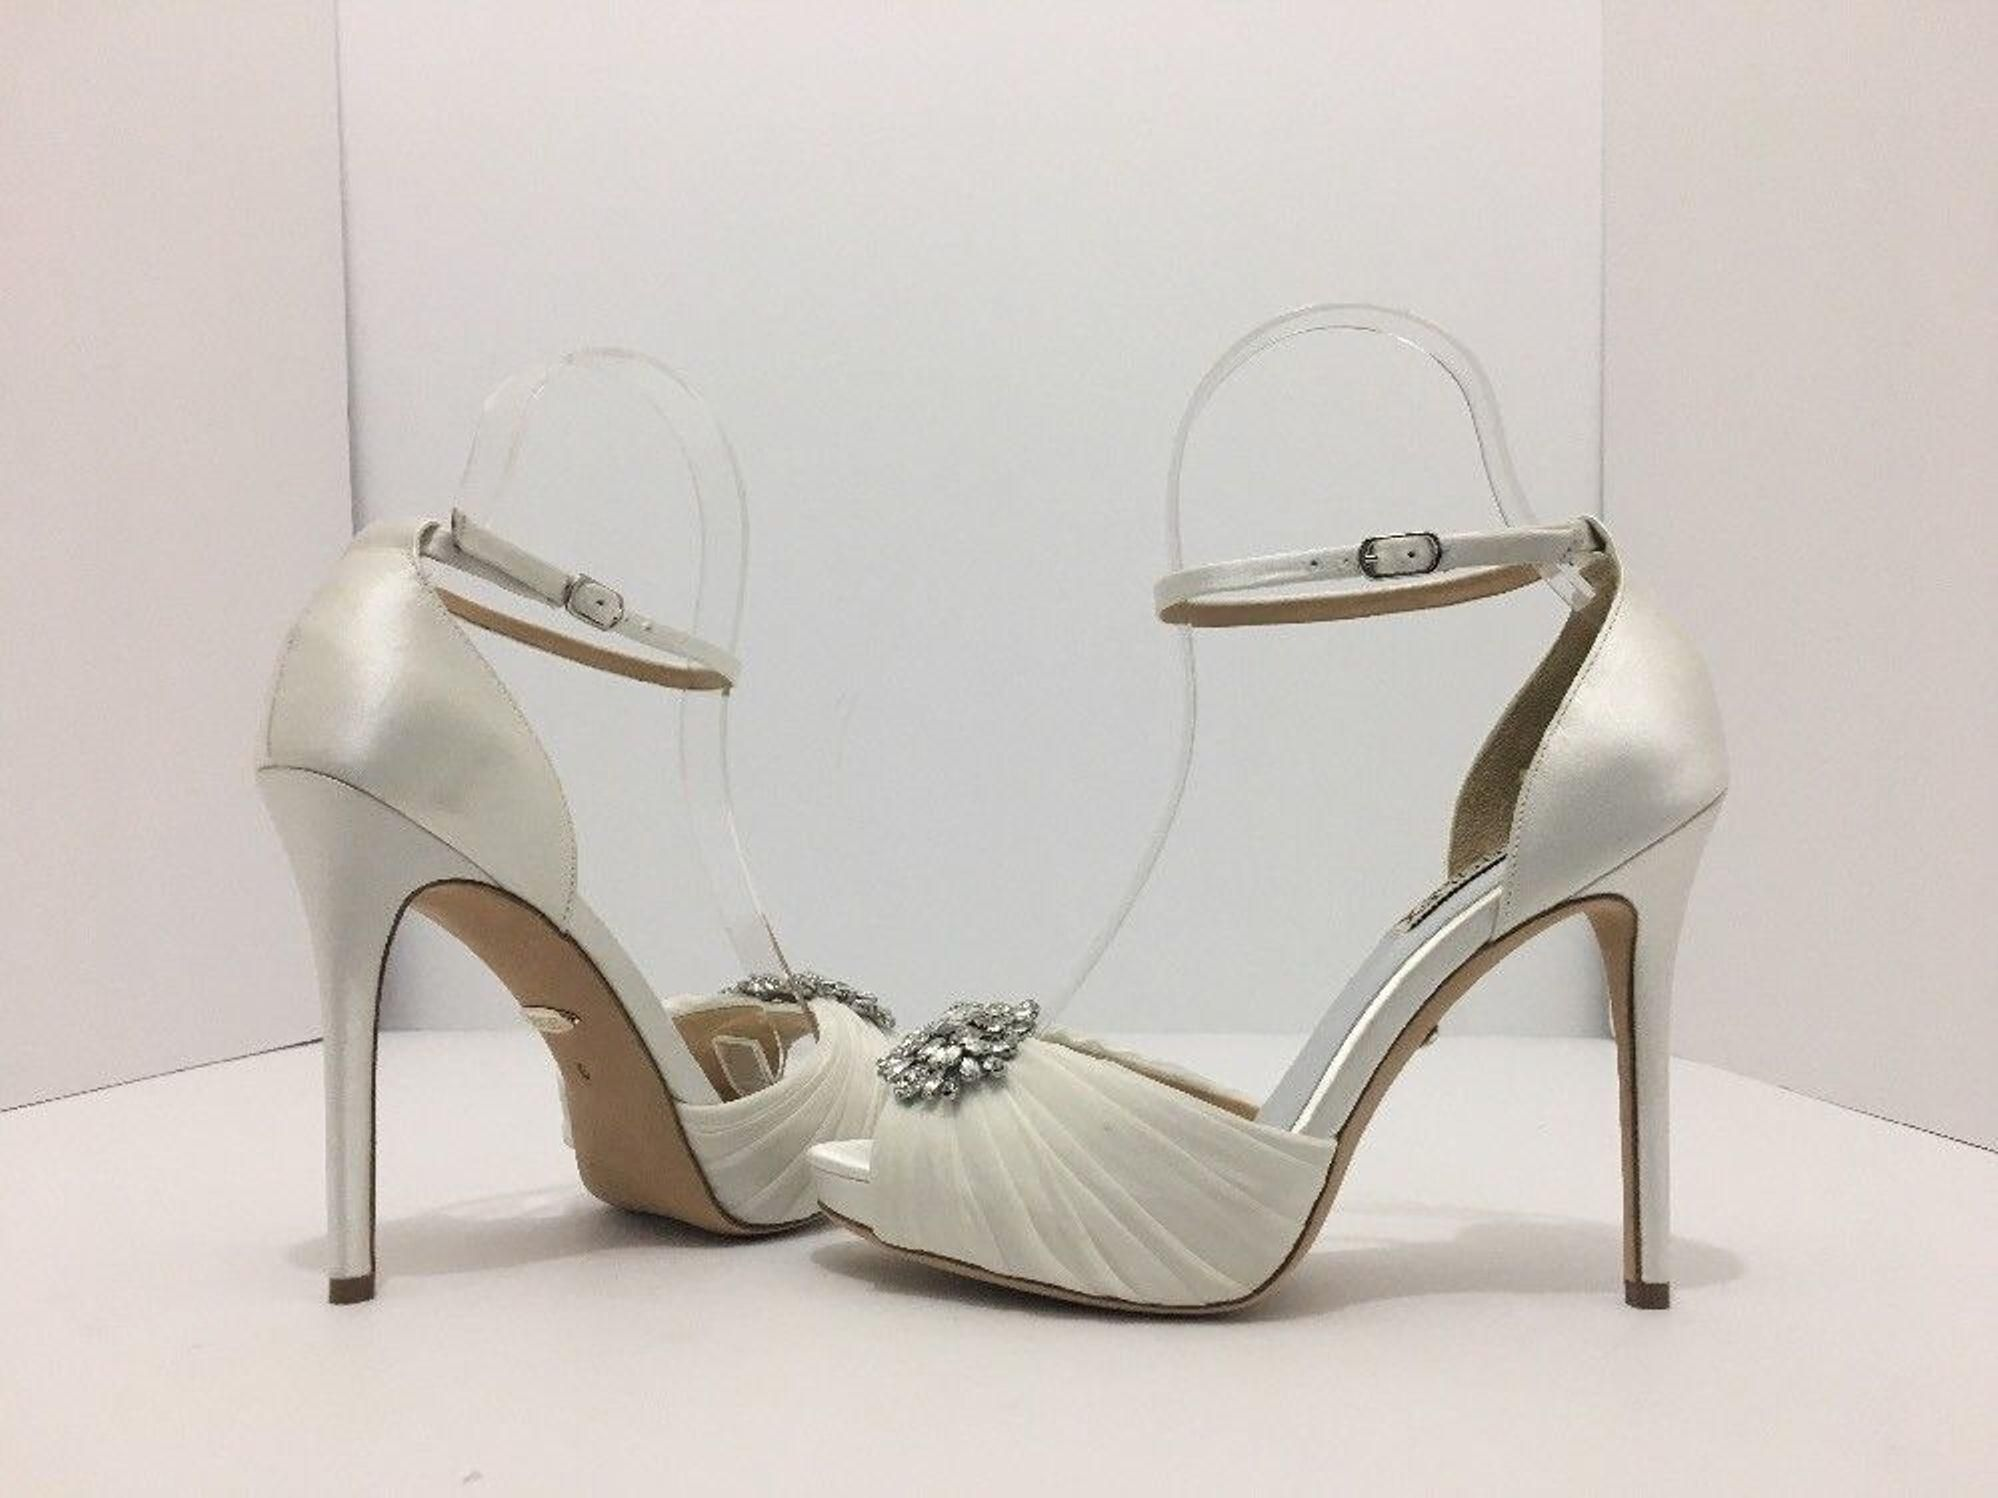 29c73d0b52b Badgley Mischka Tad White Satin Women s Platofrm High Heels Sandals Wedding  Shoes. Badgley Mischka Tad White Satin Women s Platofrm High Heels Sandals  ...